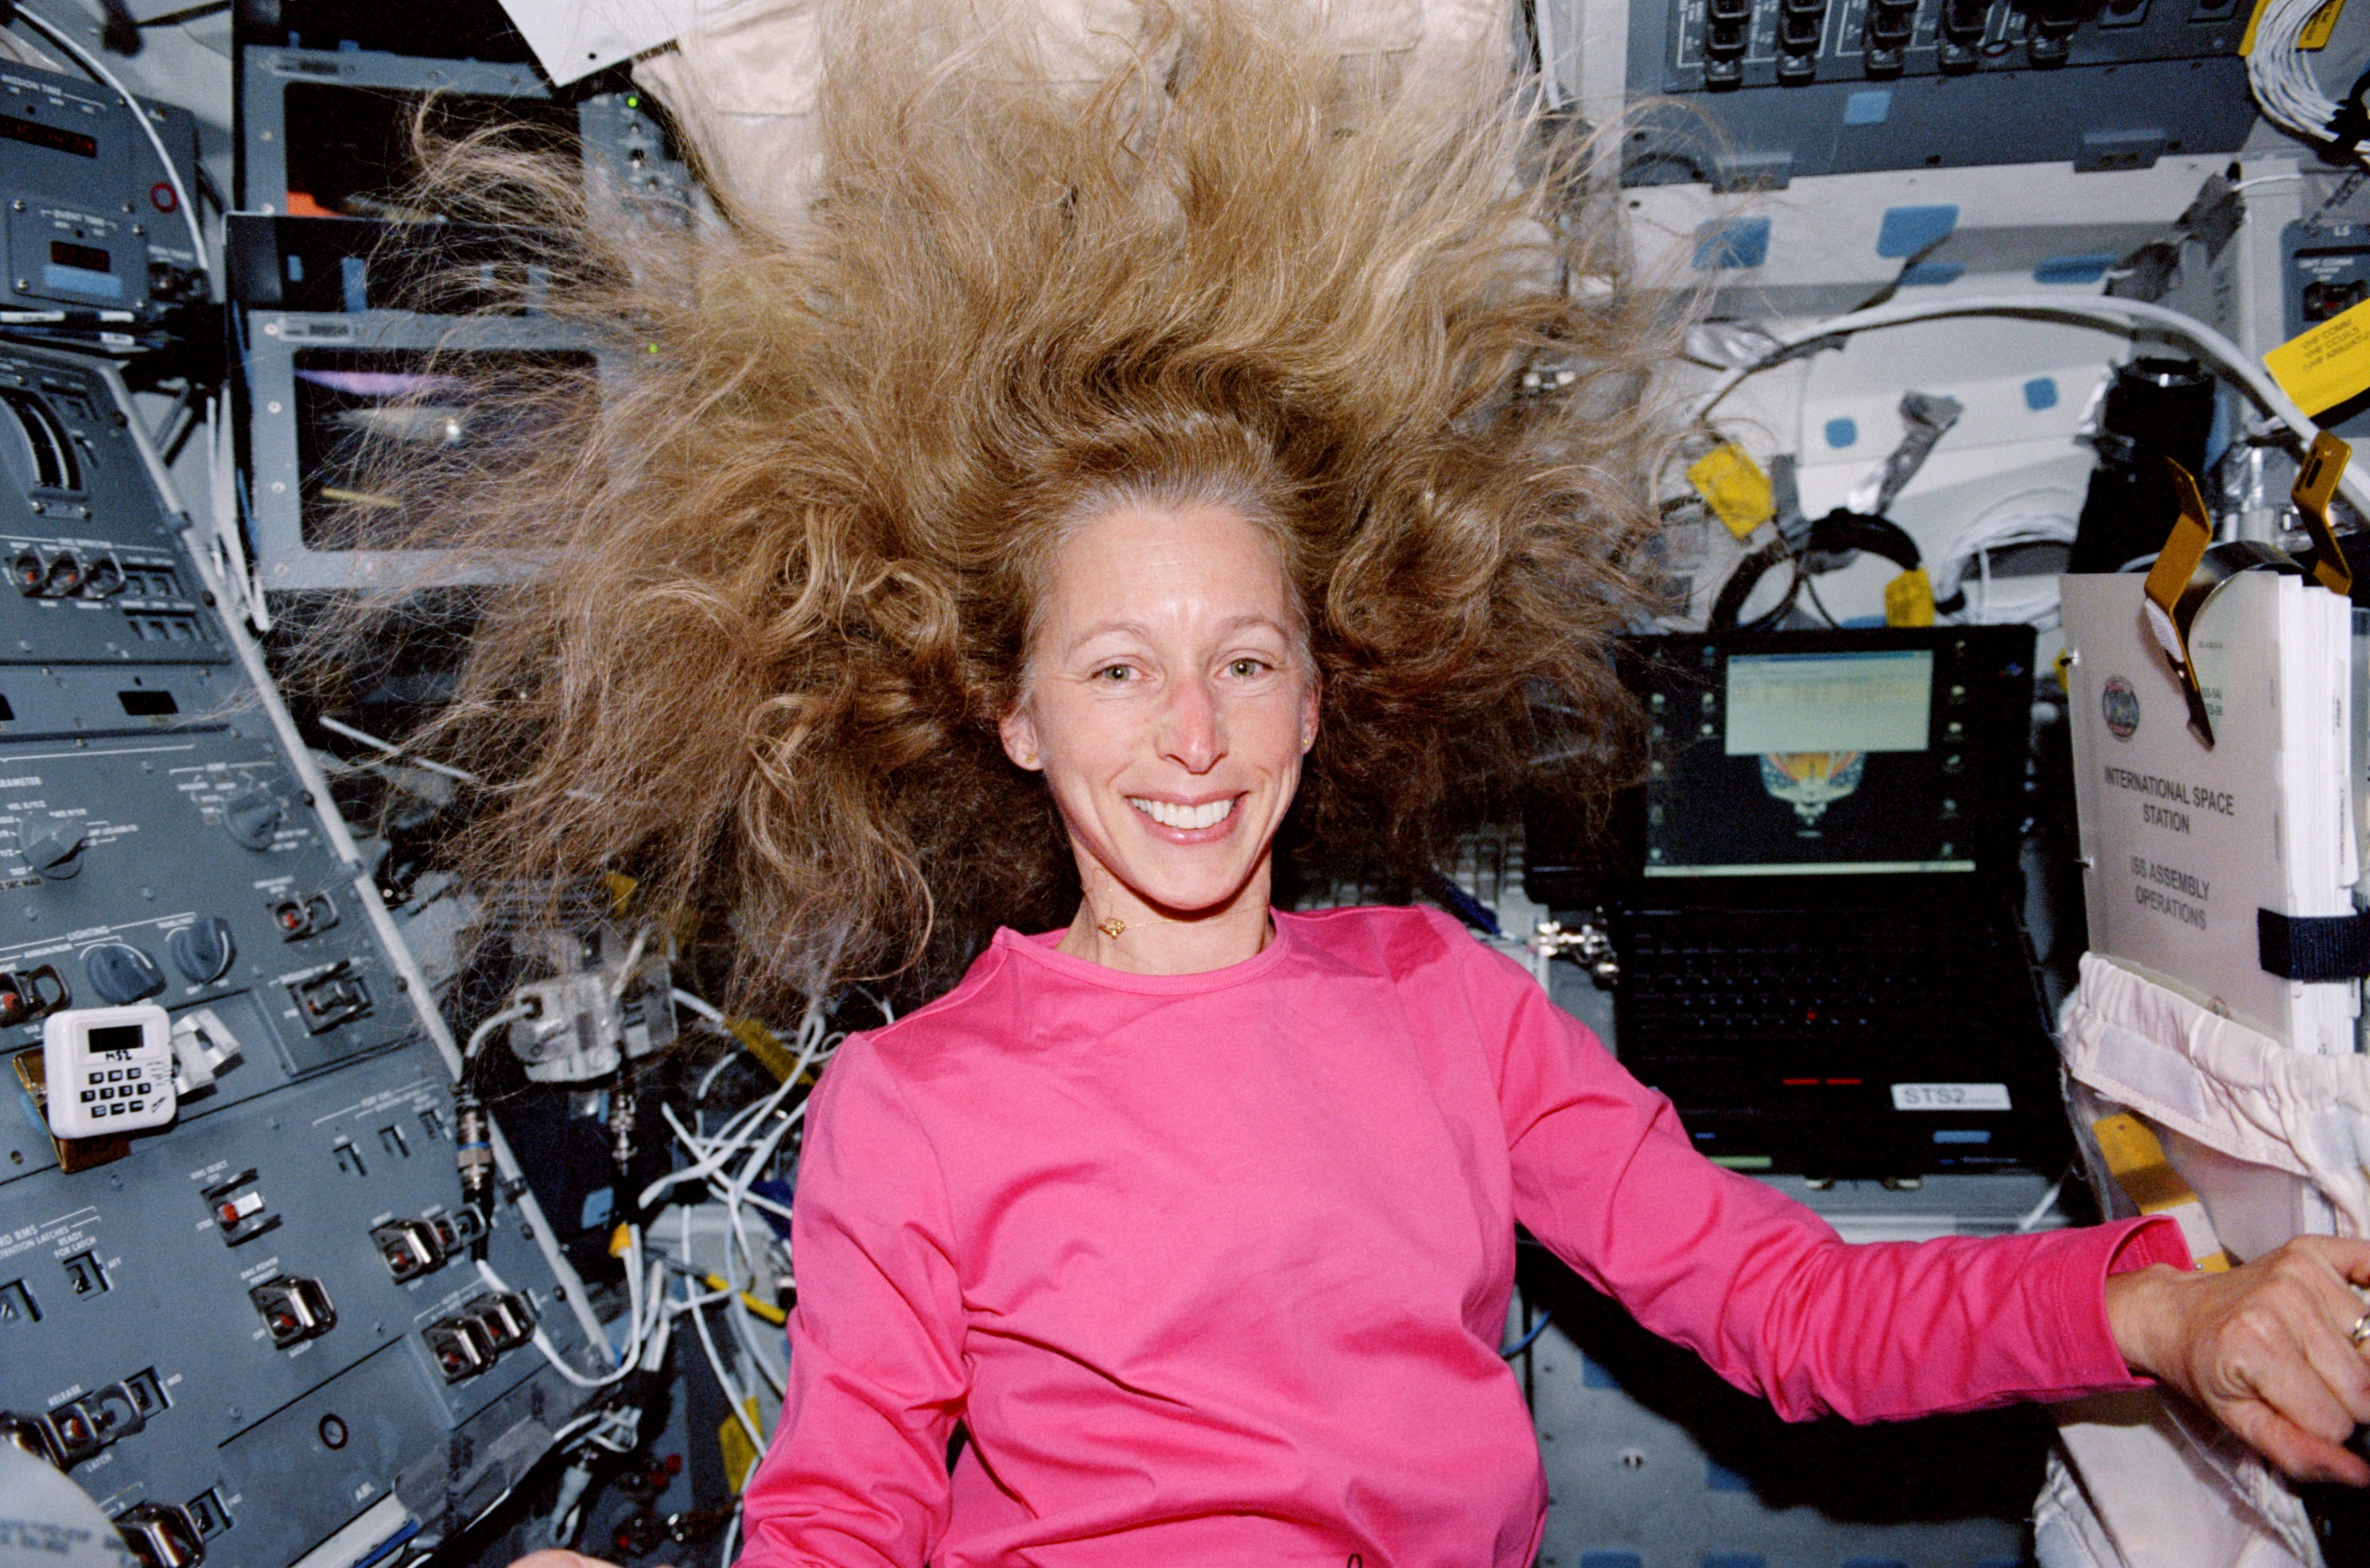 (7-20 February 2001) --- Astronaut Marsha S. Ivins, STS-98 mission specialist, is photographed on the mid deck of the Earth-orbiting Space Shuttle Atlantis.